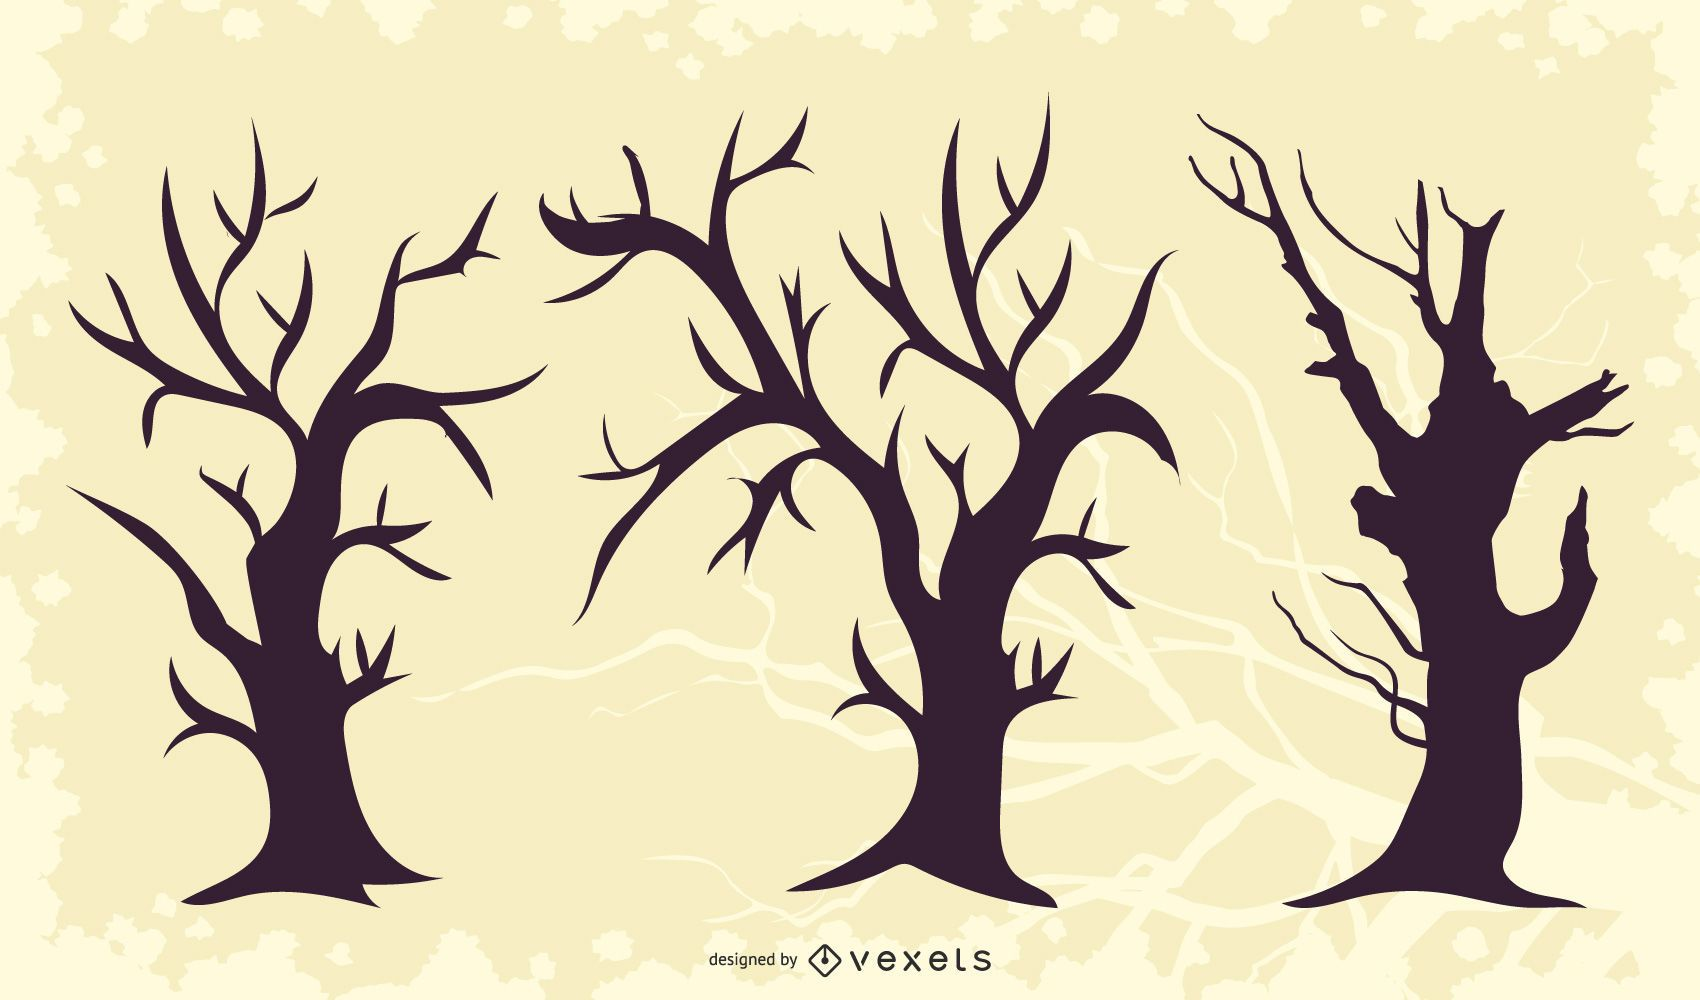 Dead Crooked Tree Pack Silhouette